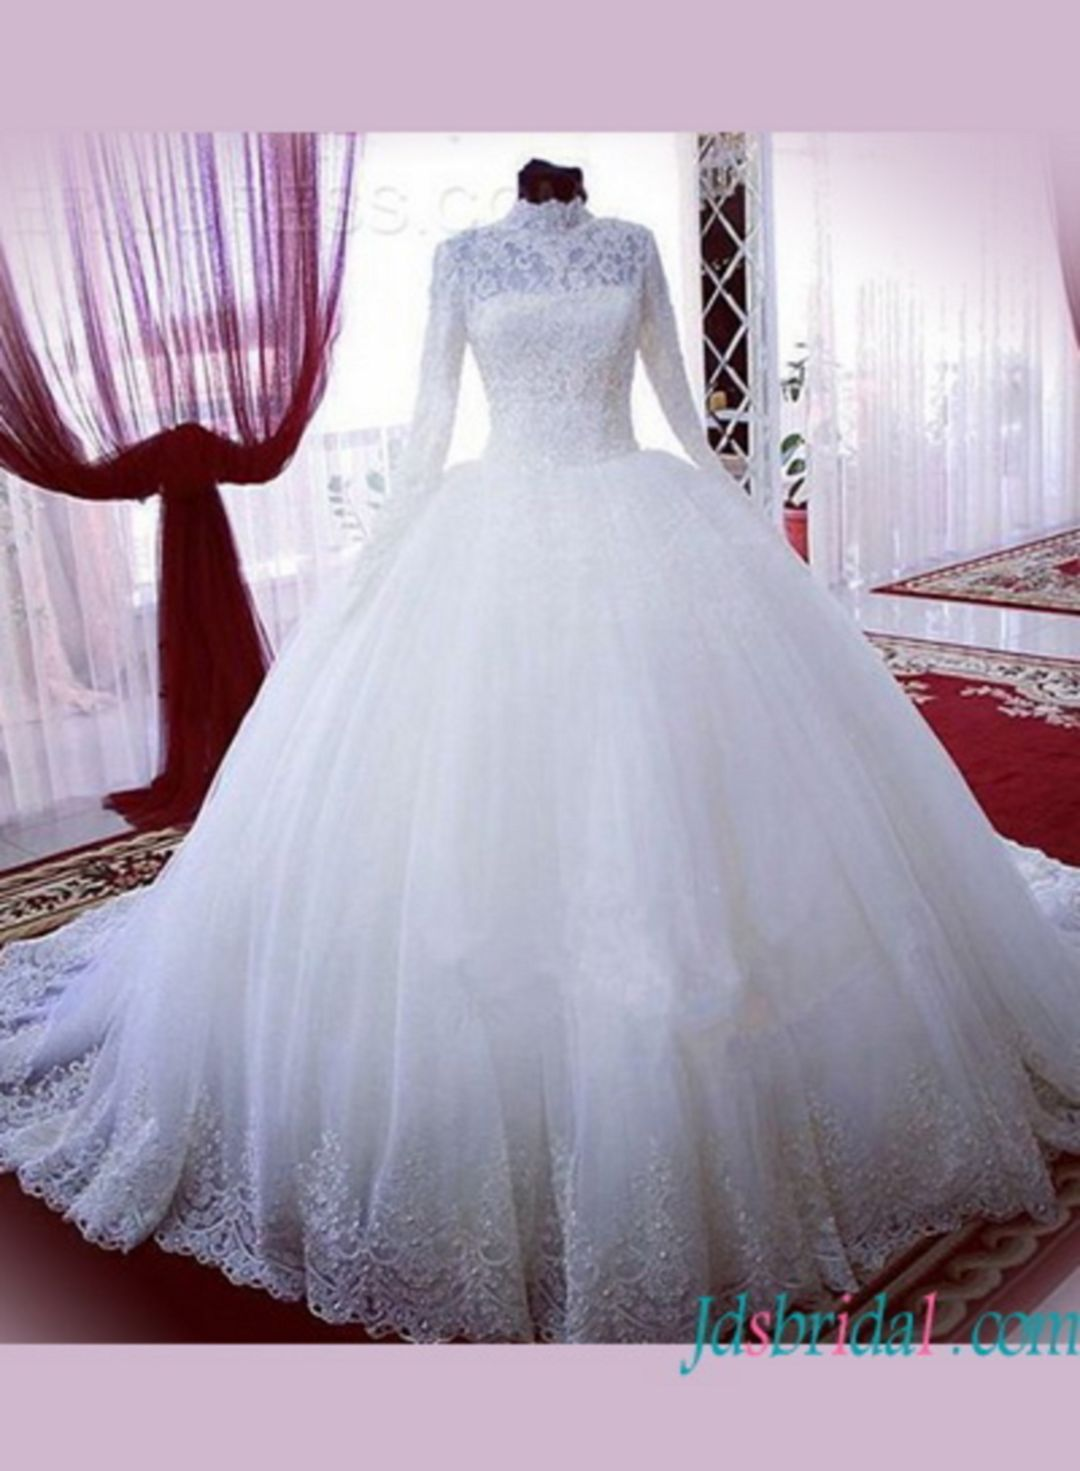 55+ Most Beautiful White Wedding Dress Ball Gown Ideas For The ...